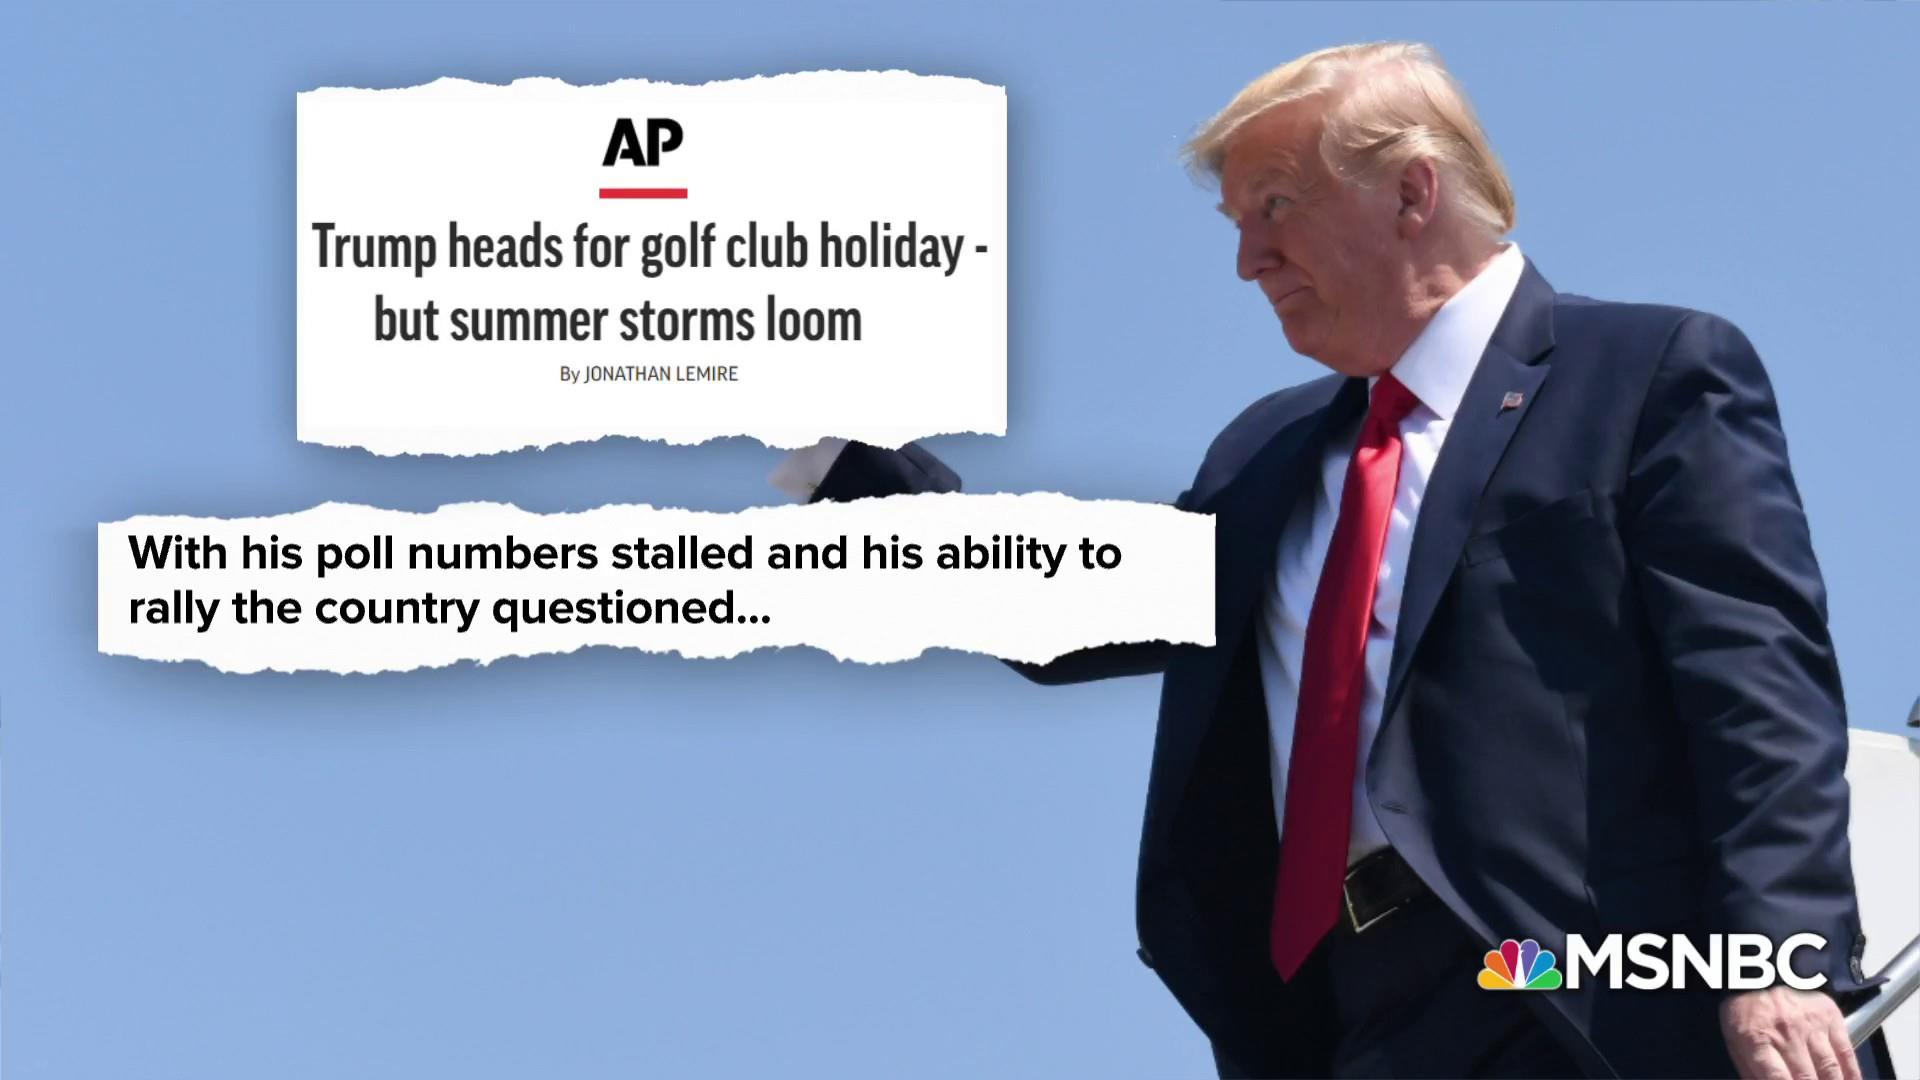 Golf, Twitter, and cable news. What could go wrong?